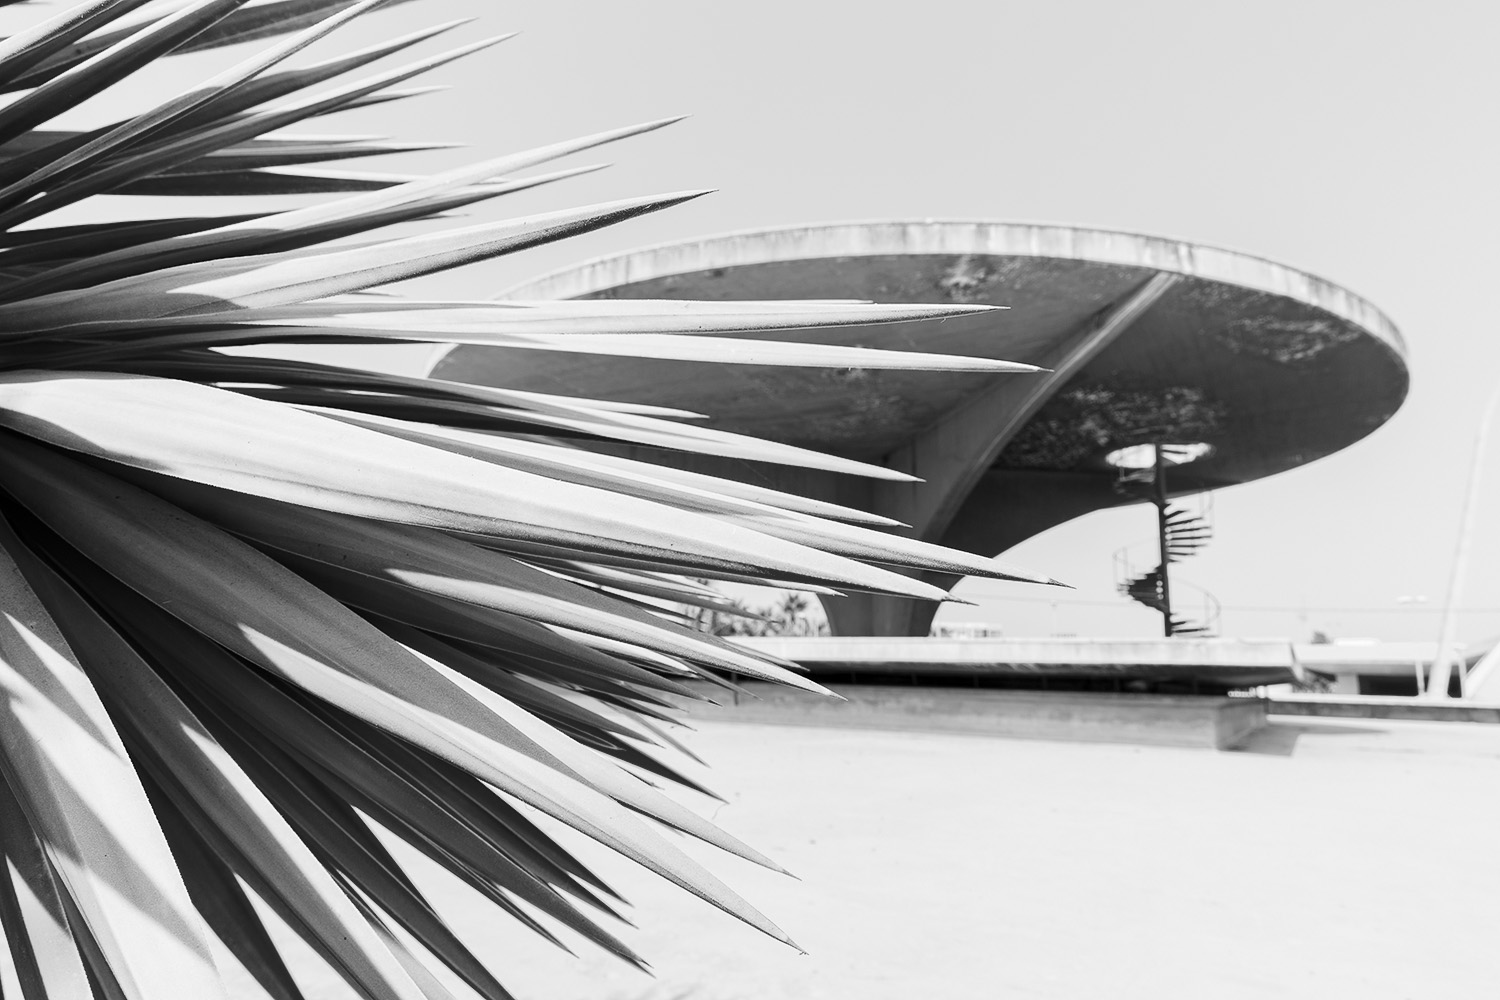 Tripoli Permanent International Fair - Oscar Niemeyer